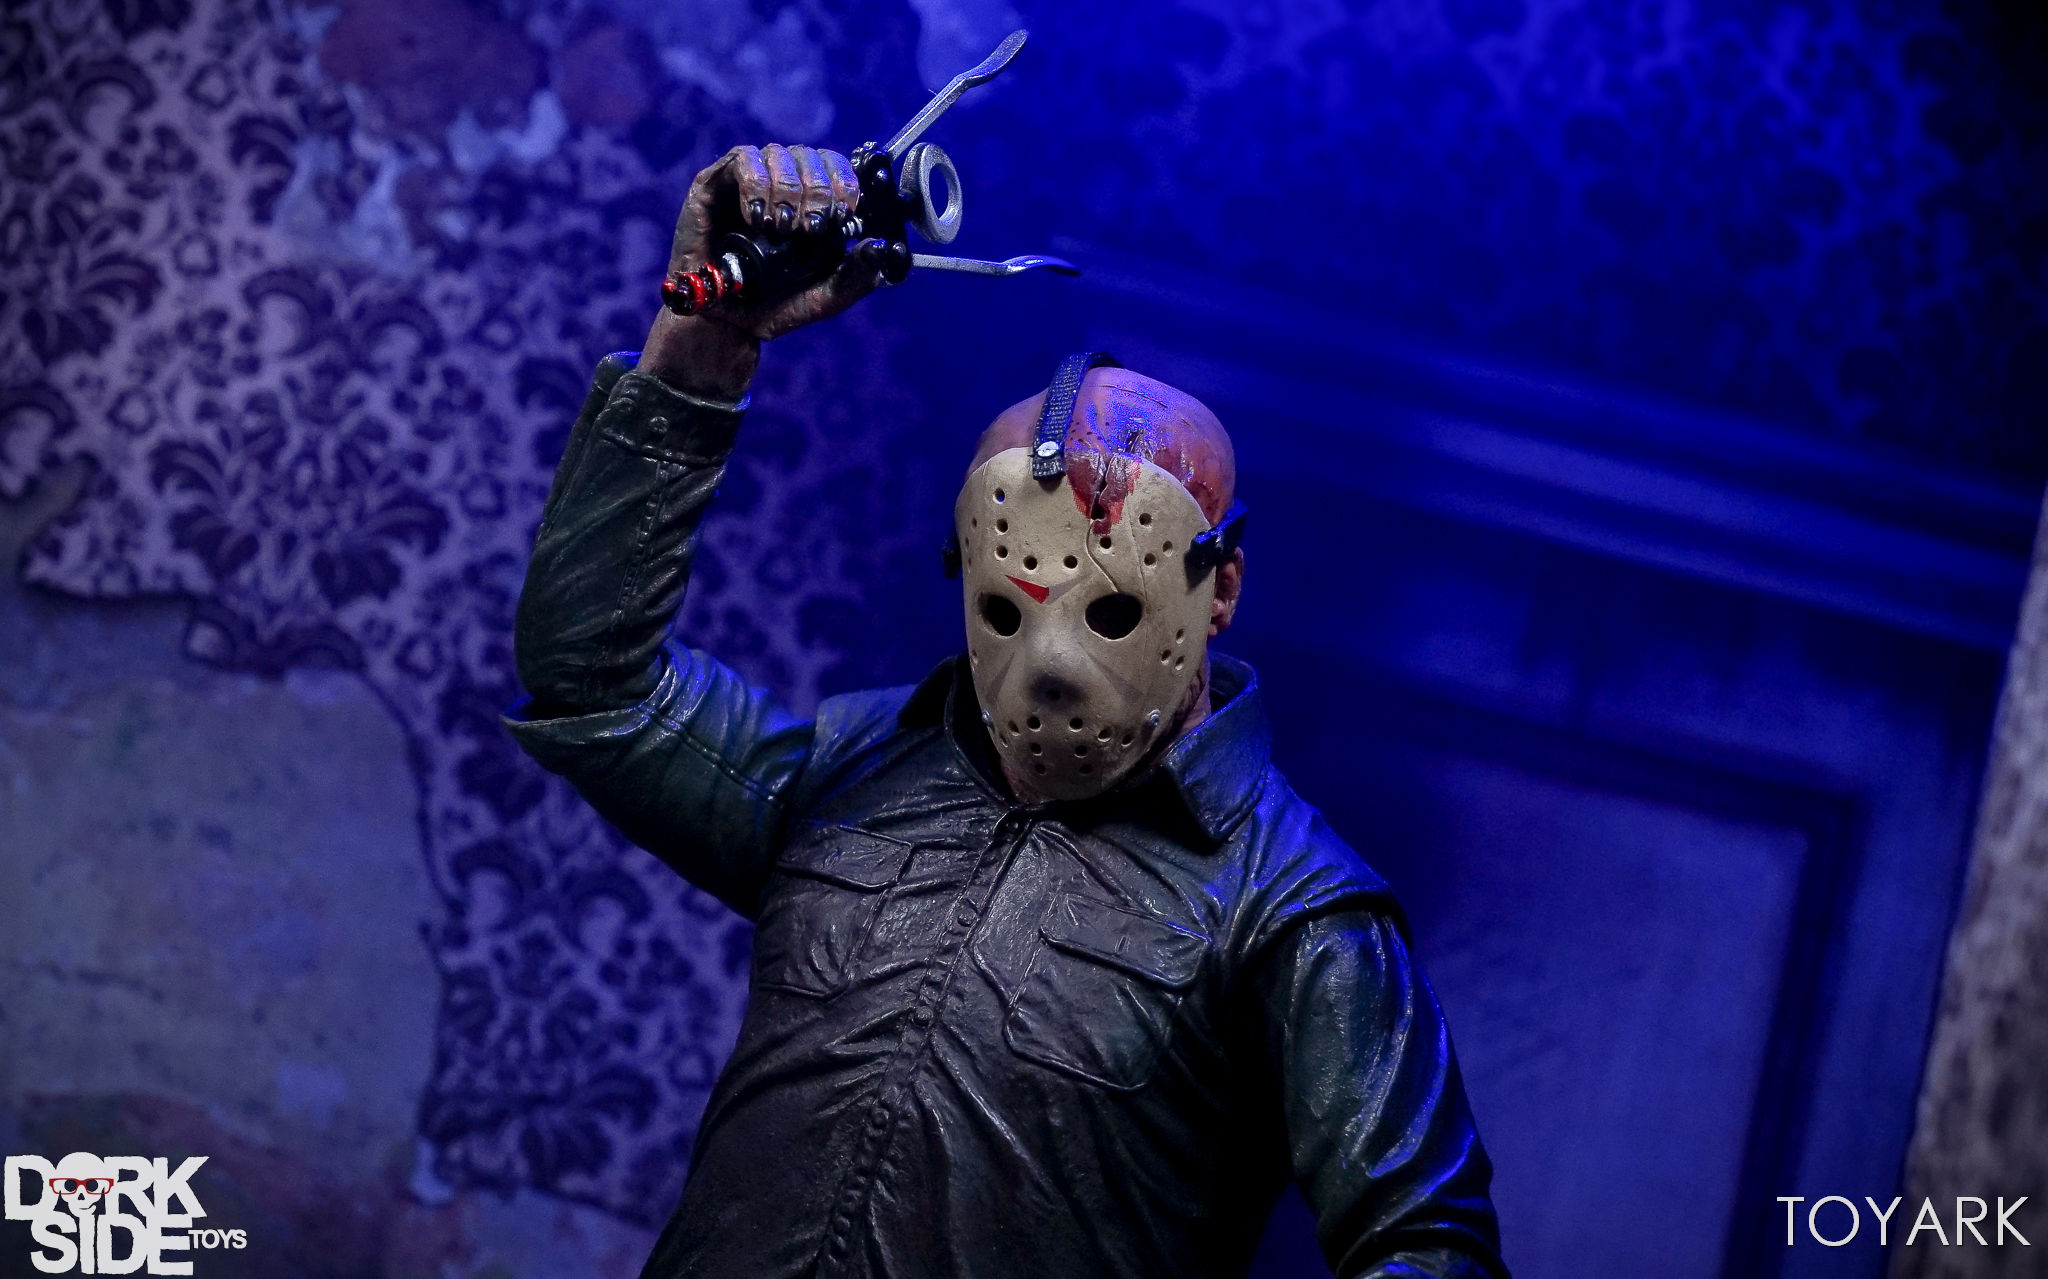 http://news.toyark.com/wp-content/uploads/sites/4/2017/06/Jason-Voorhees-Final-Chapter-Ultimate-036.jpg